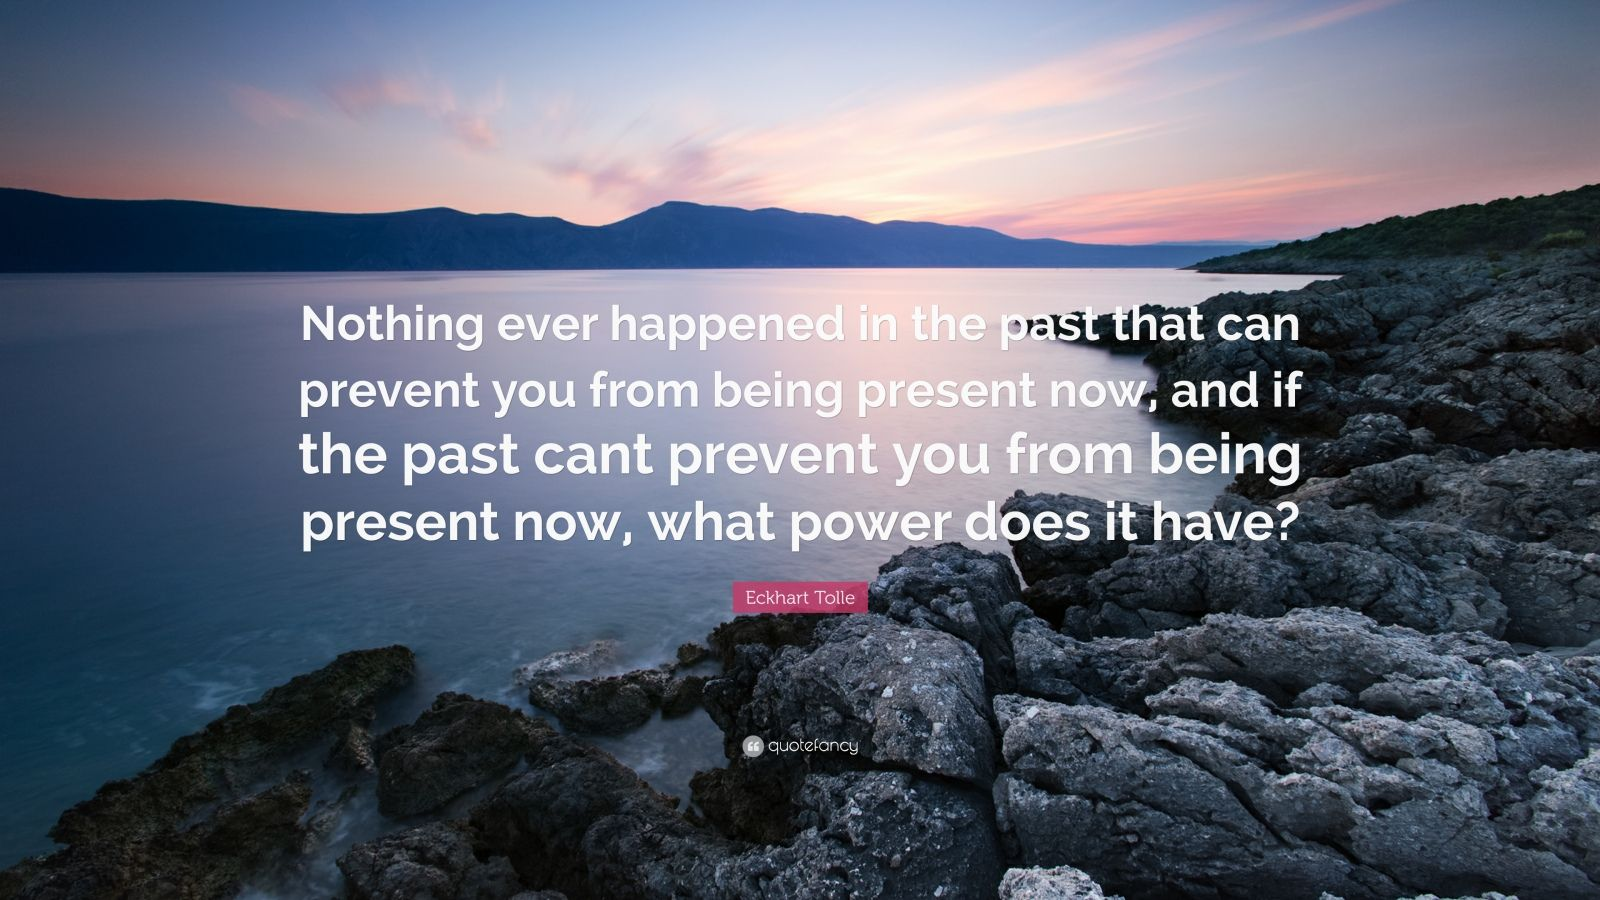 "Eckhart Tolle Quote: ""Nothing ever happened in the past that can prevent you from being present now, and if the past cant prevent you from being present now, what power does it have?"""